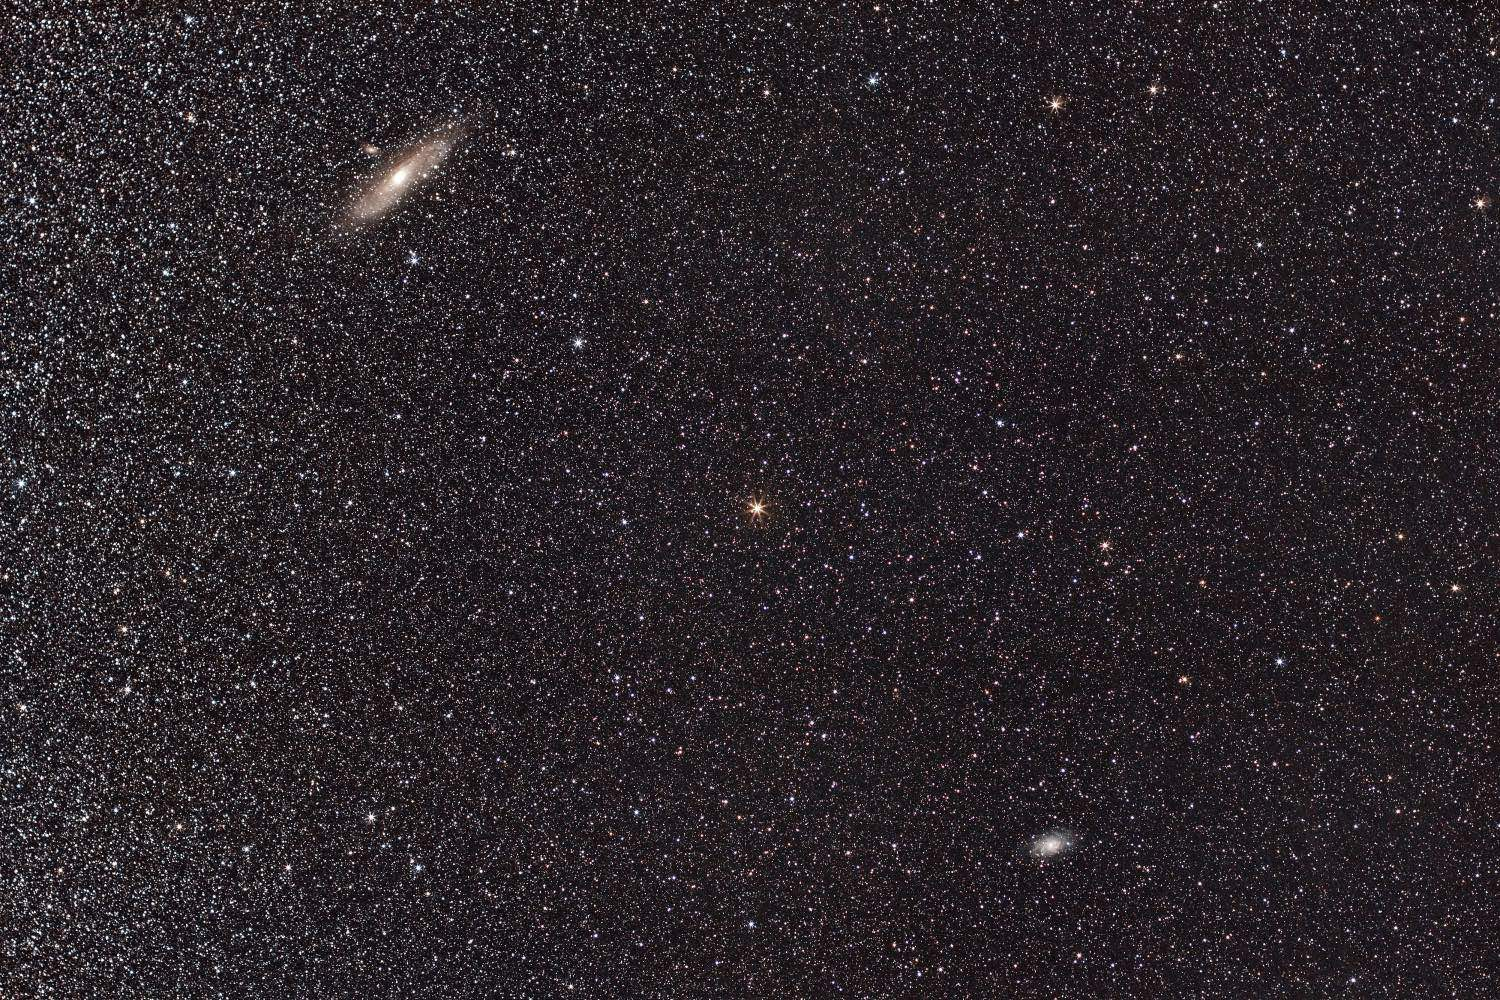 M31, Andromeda & M33, Triangulum galaxy!    51x240s - f/4.5 - ISO 800 - EOS 1200D (Astrodon) - EF 50mm f/1.4 - SkyWatcher Star Adventurer - 10 DARK - 10 BIAS - 10 FLAT - Mac OS + PixInsight + Canon DPP 4 - 5000x3333 px.  Domagnano, Rep. of San Marino, 28 September 2016.